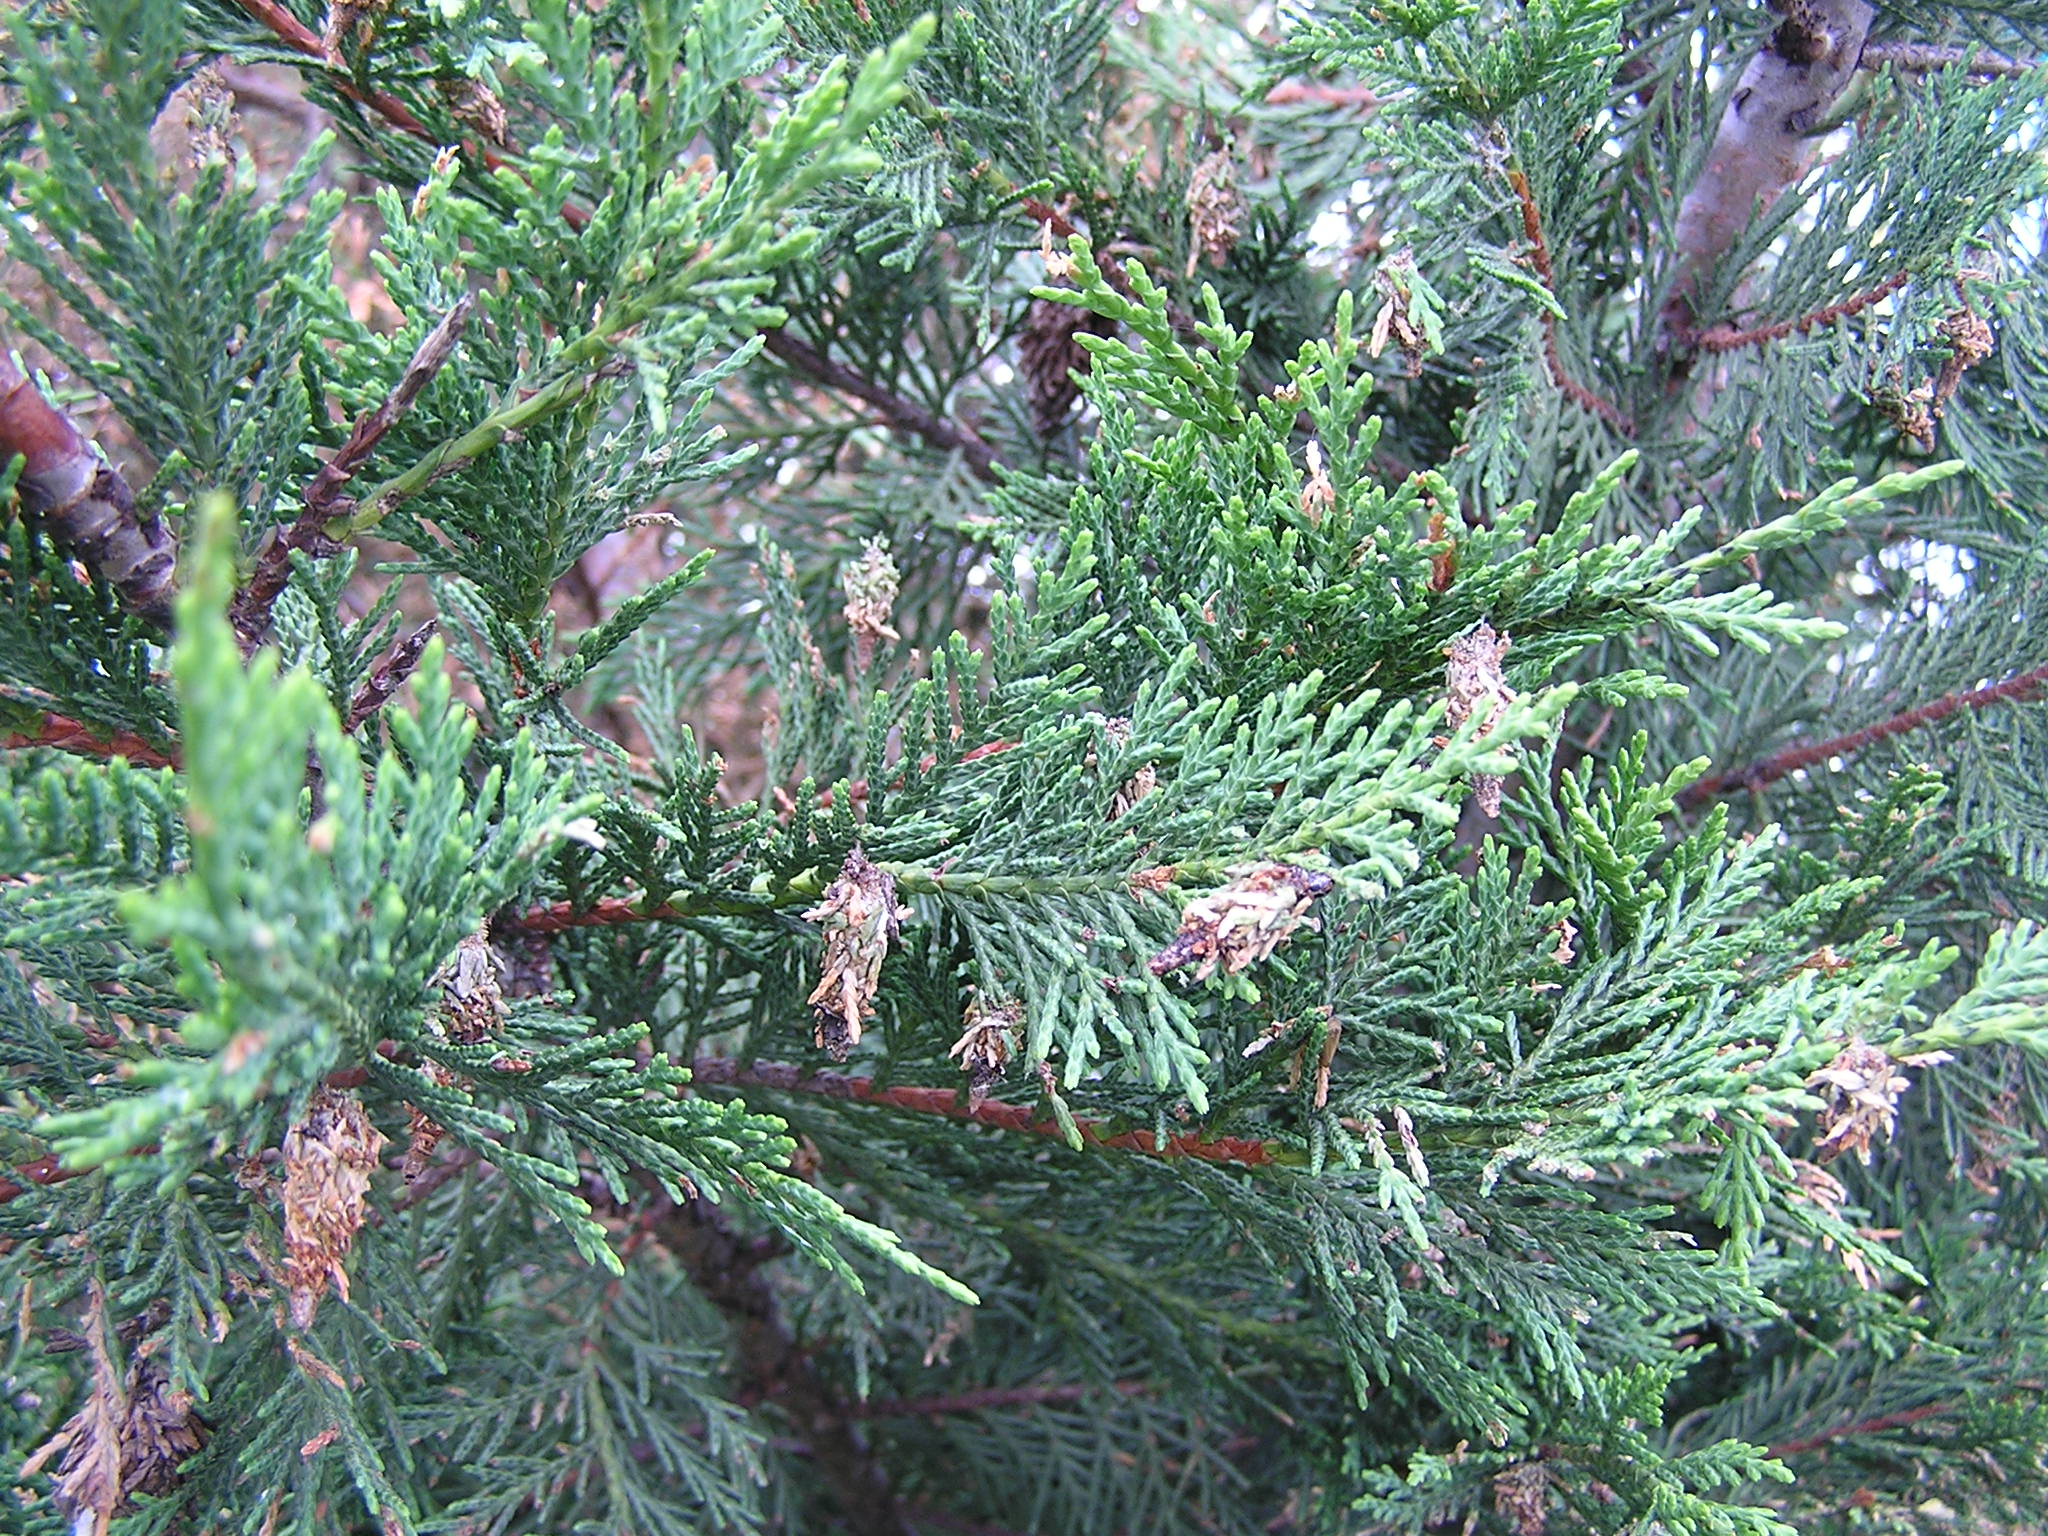 Bagworms on tree